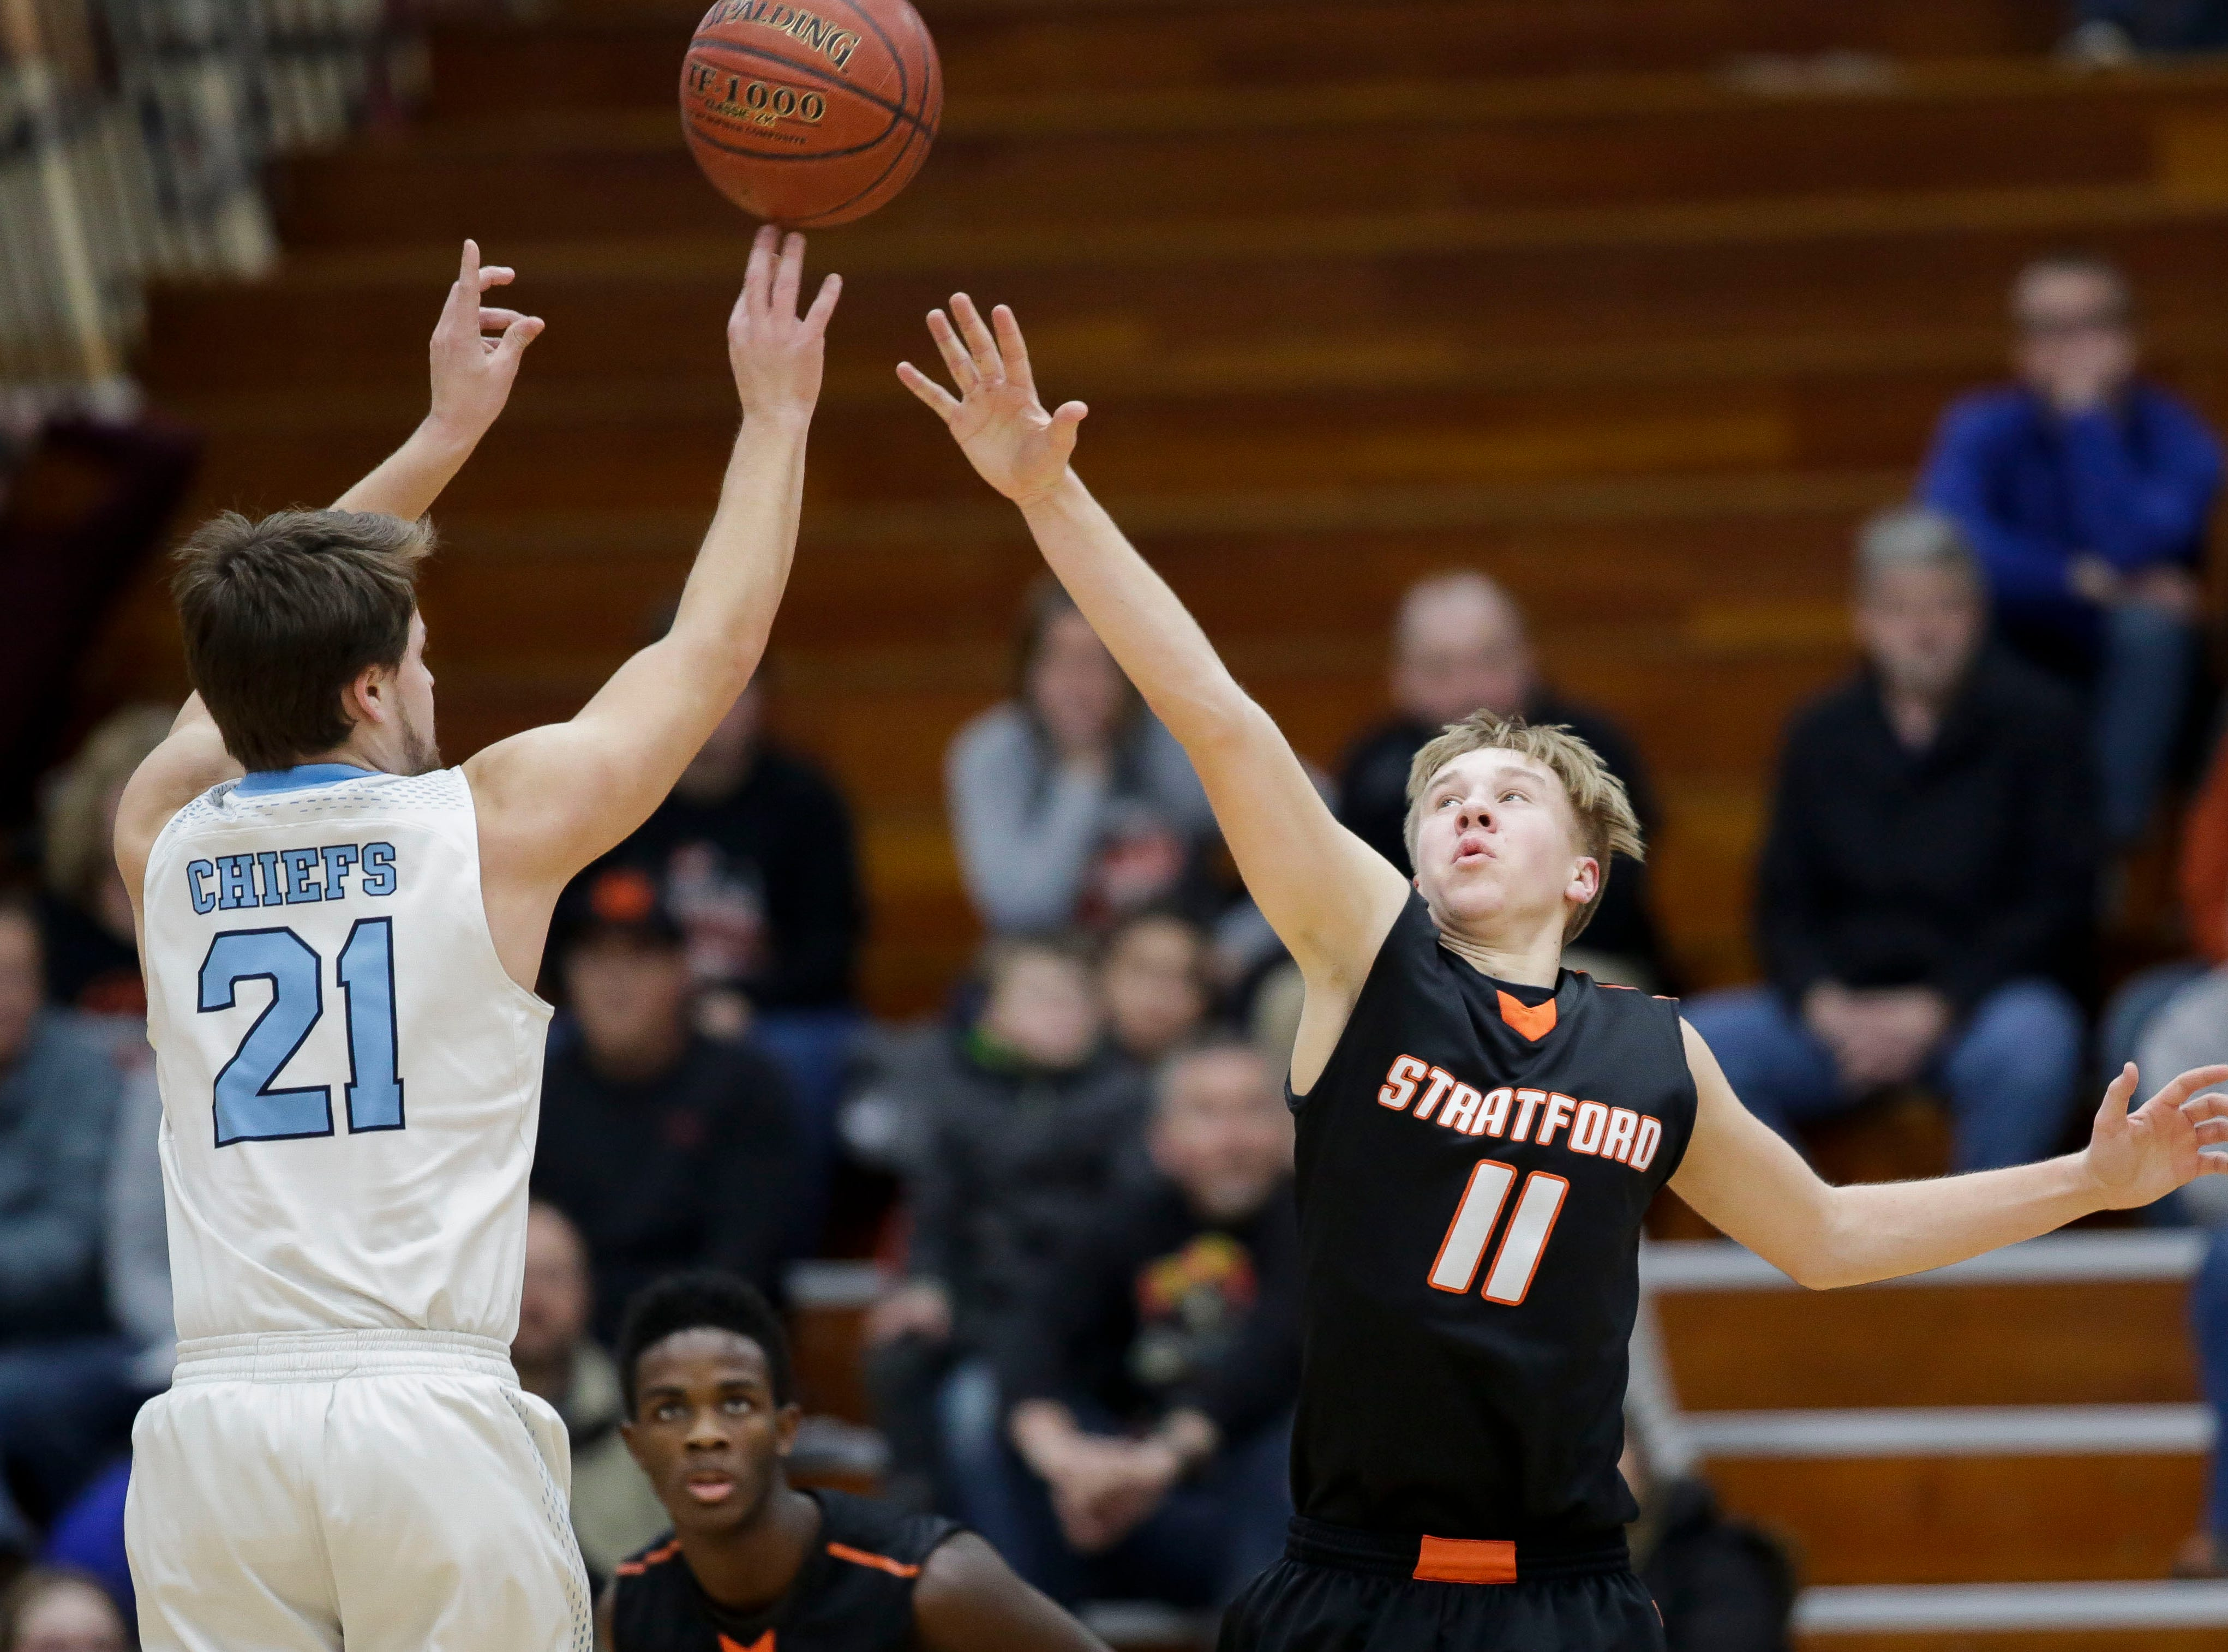 Stratford's Chandler Schmidt (11) contests a shot against Wisconsin Dells in a Division 3 sectional semifinal on Thursday, March 7, 2019, at Stevens Point Area High School in Stevens Point, Wis. Tork Mason/USA TODAY NETWORK-Wisconsin